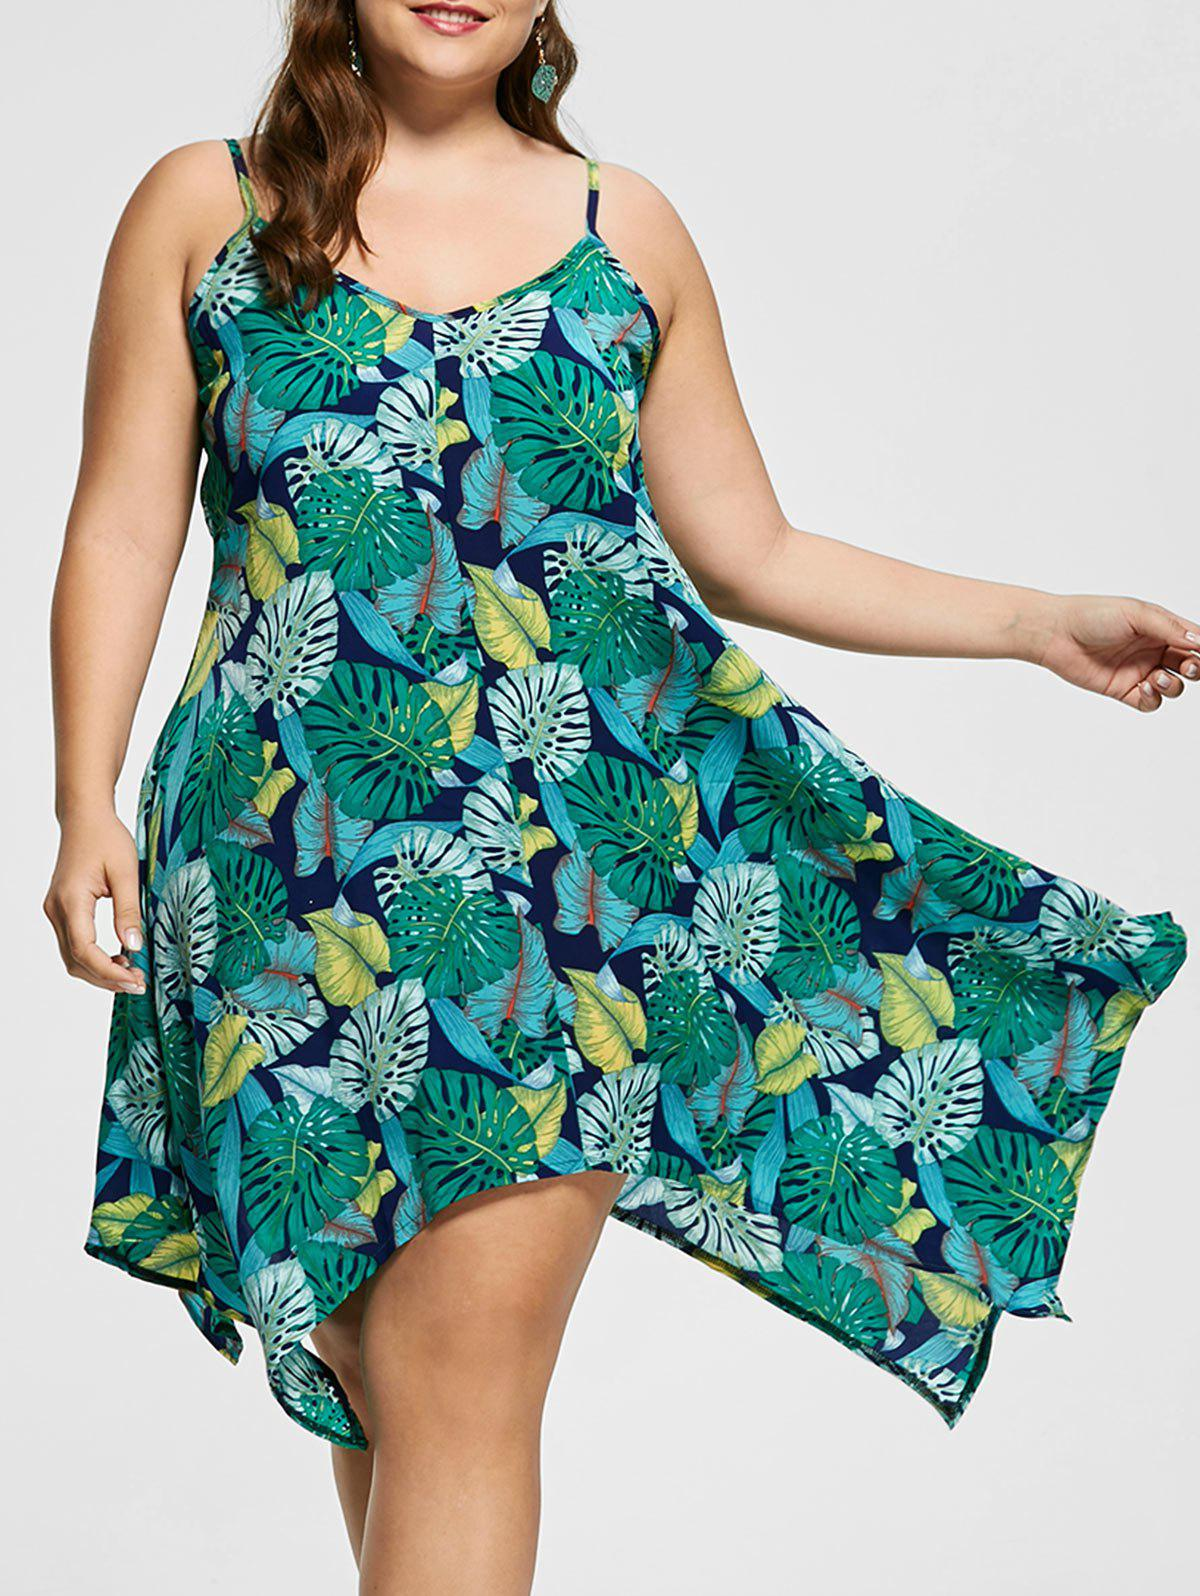 Tropical Print Spaghetti Strap Plus Size Handkerchief Dress - multicolorCOLOR 4XL